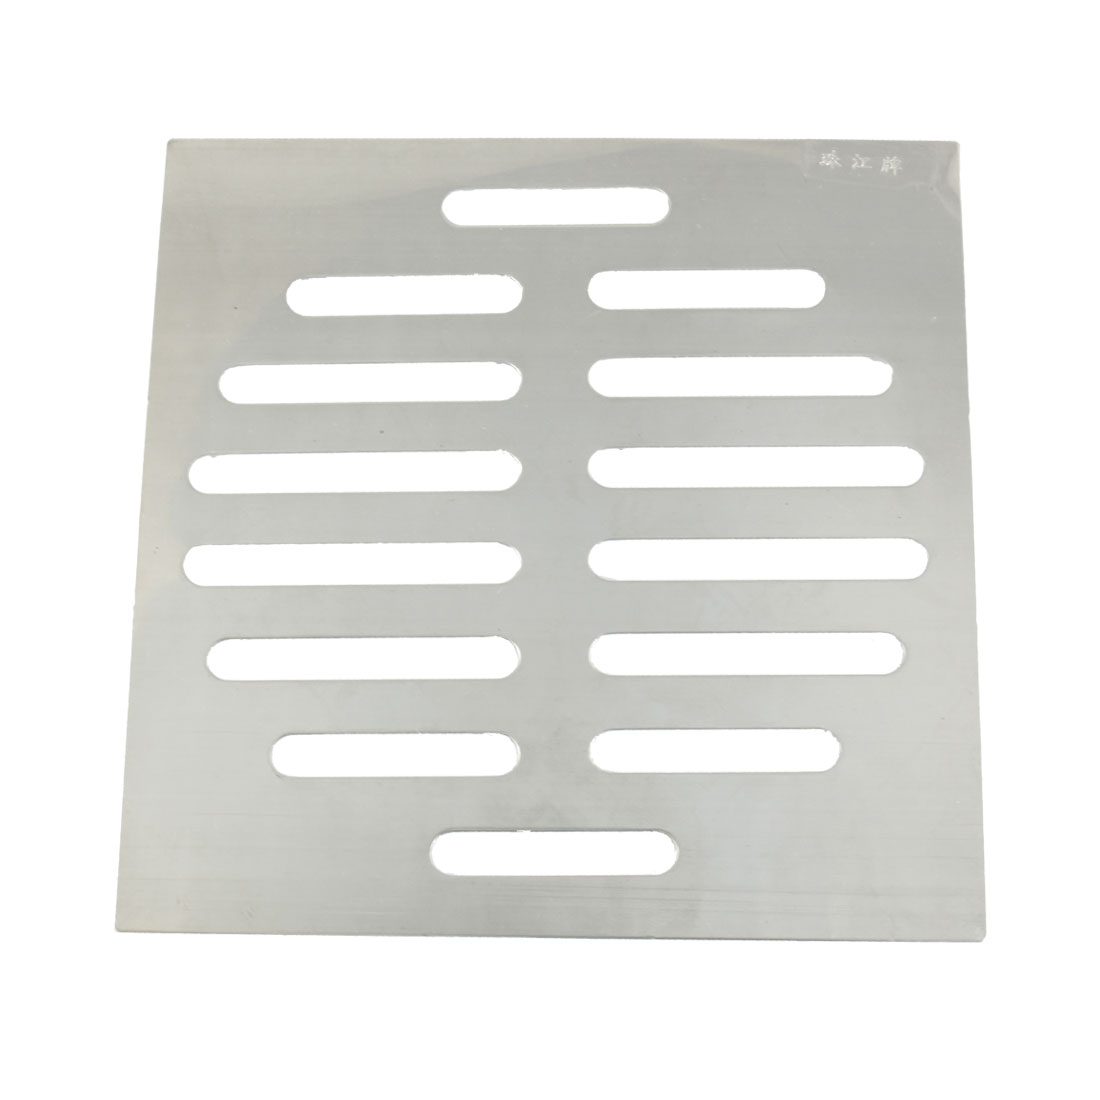 "Home Accessories 6"" 14 Holes Square Stainless Steel Floor Drain Cover"